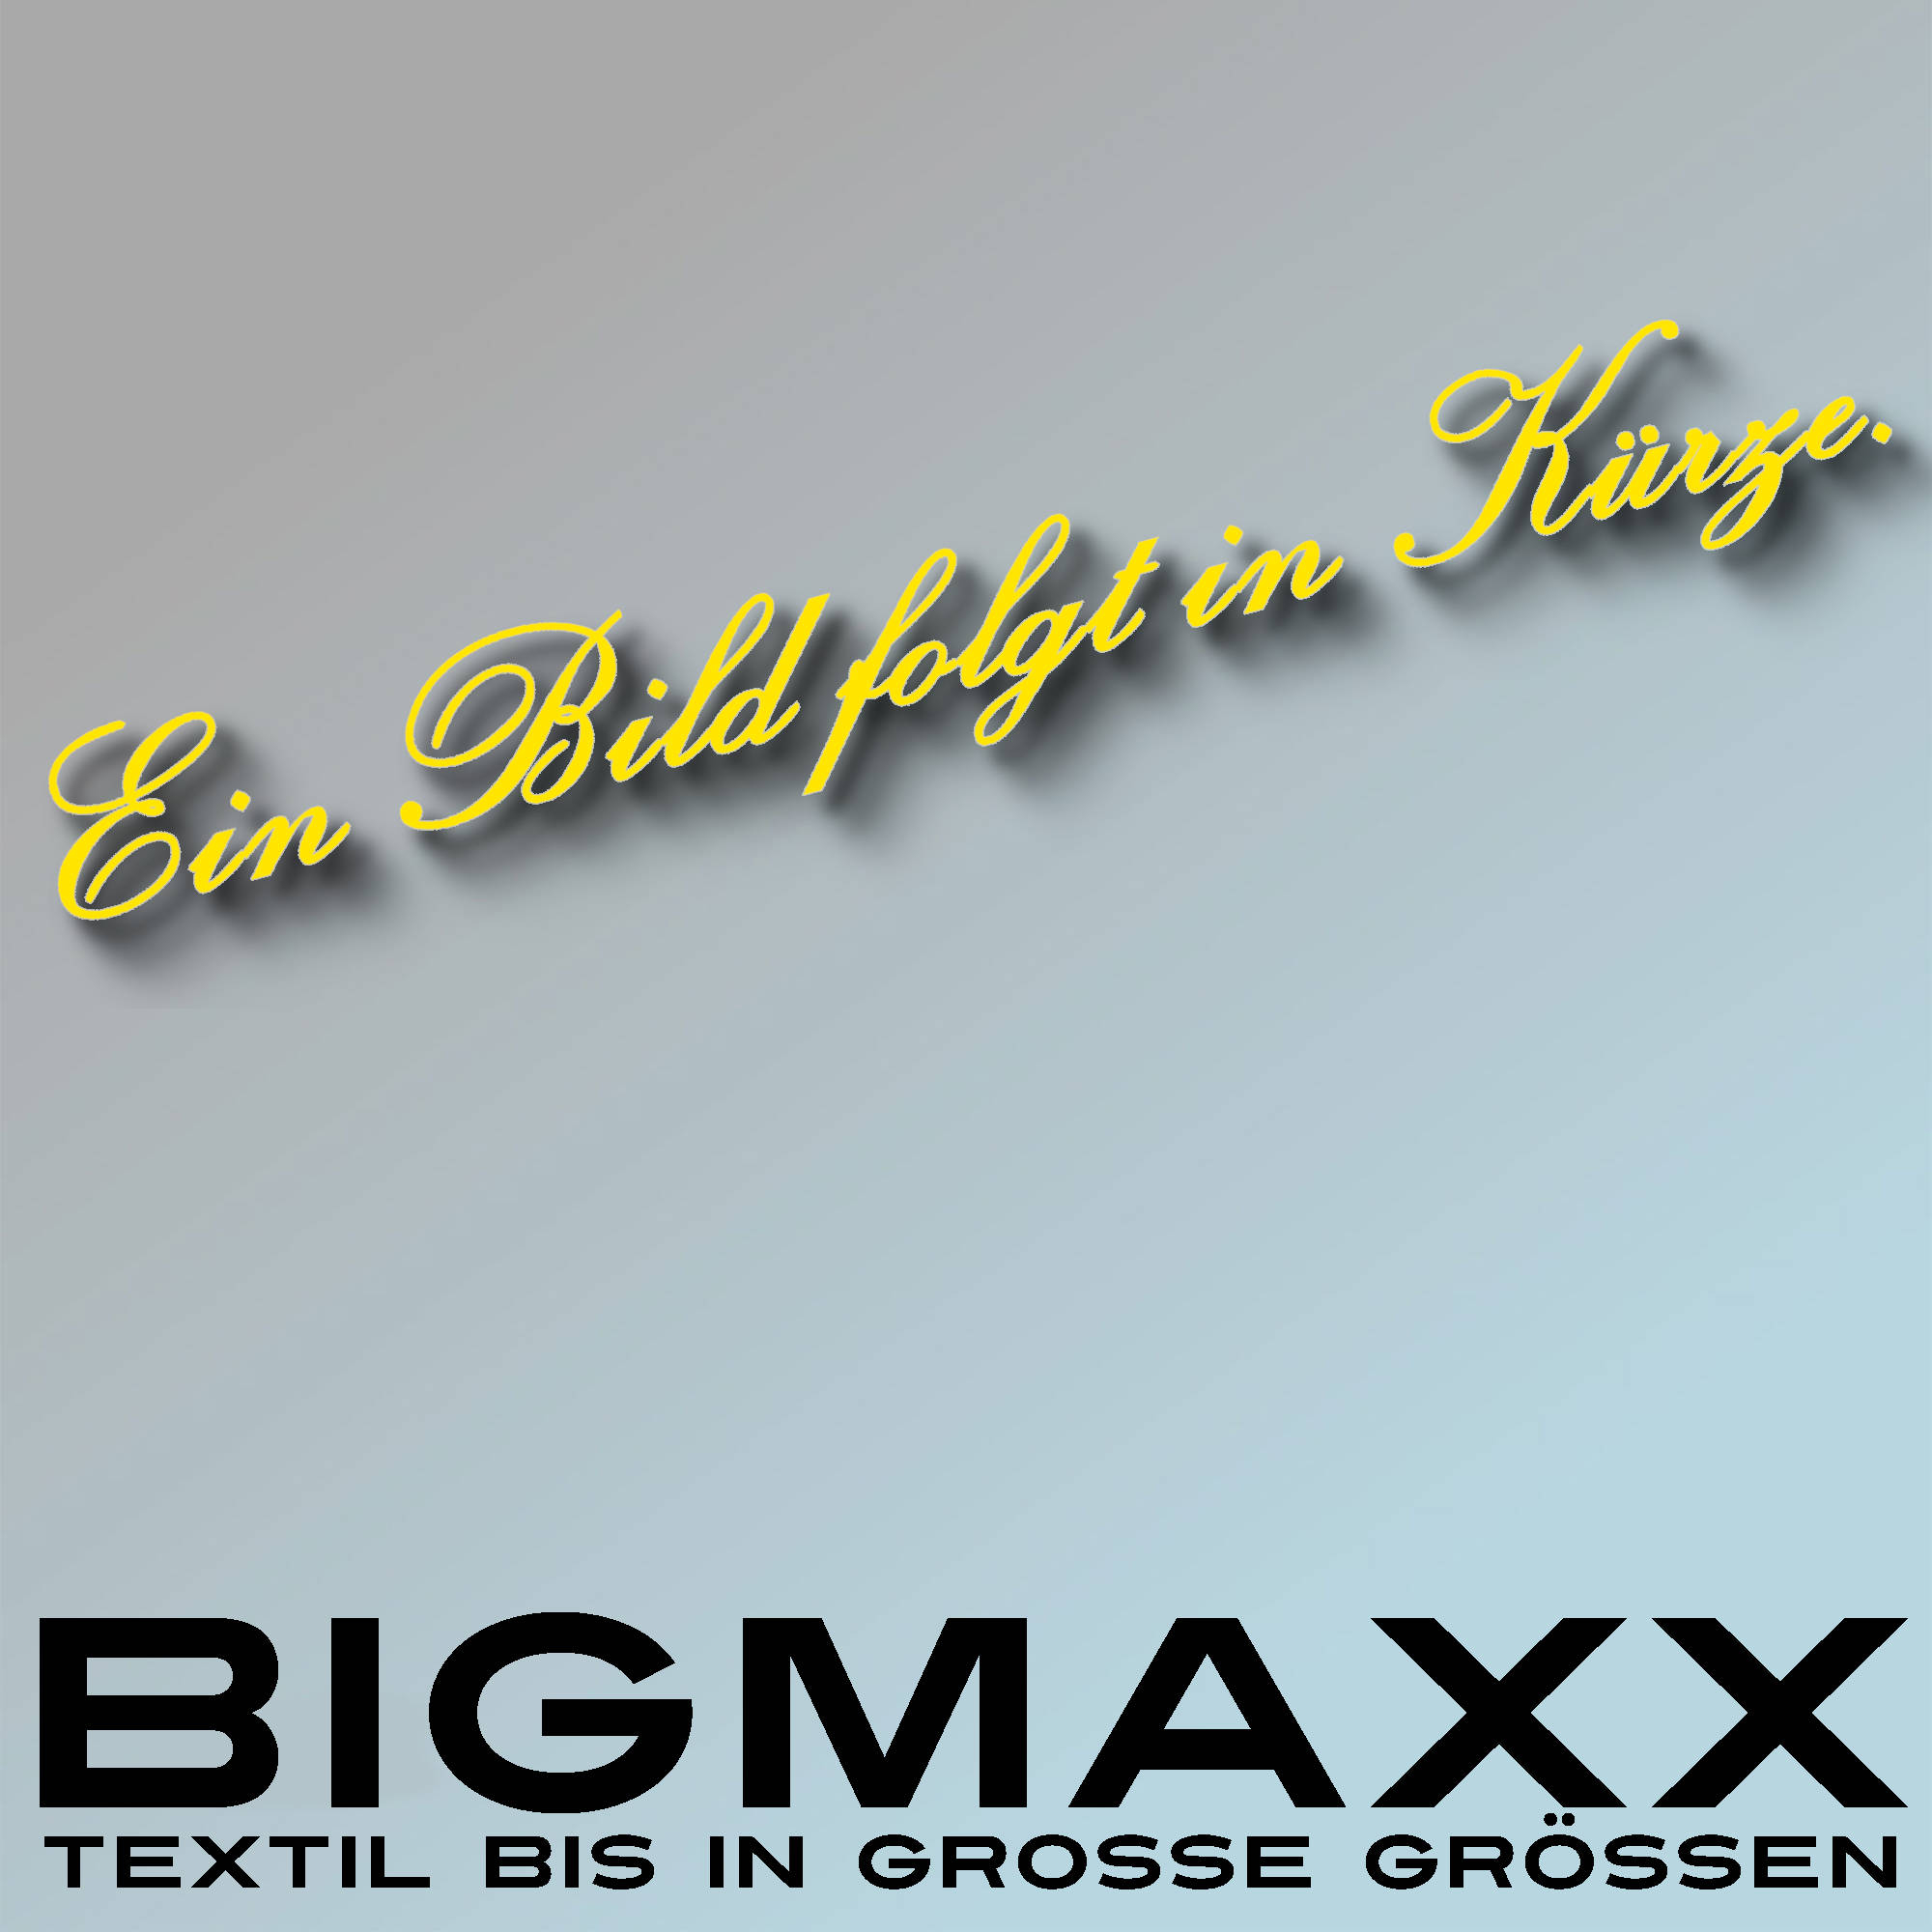 HRM Herren T-Shirt V-Neck Luxury kurzarm Shirt Gr. S bis 5XL in 6 Farben